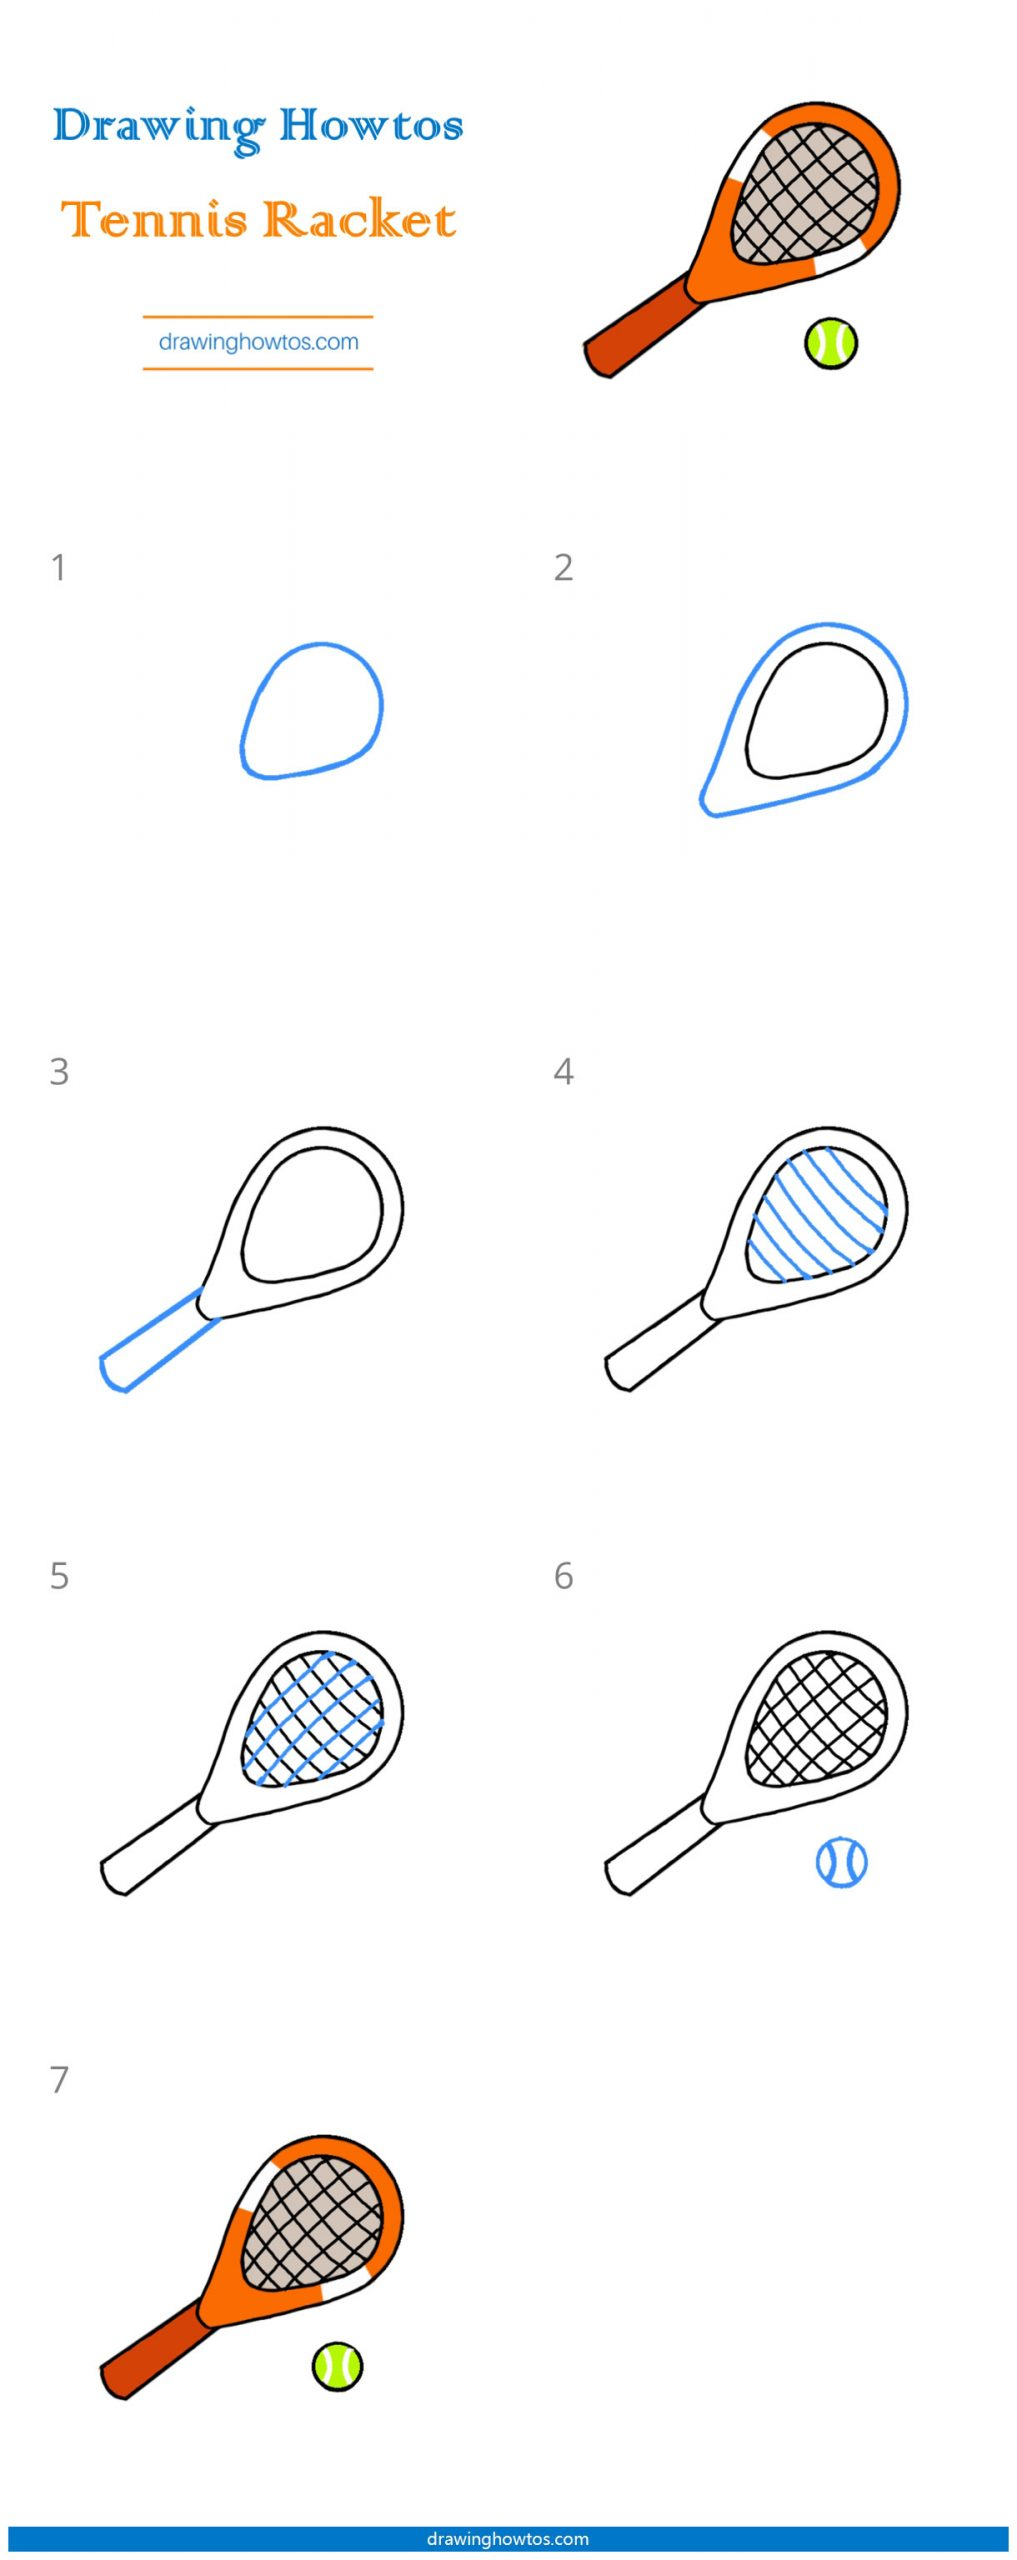 How To Draw A Tennis Racket Step By Step Easy Drawing Guides Drawing Howtos